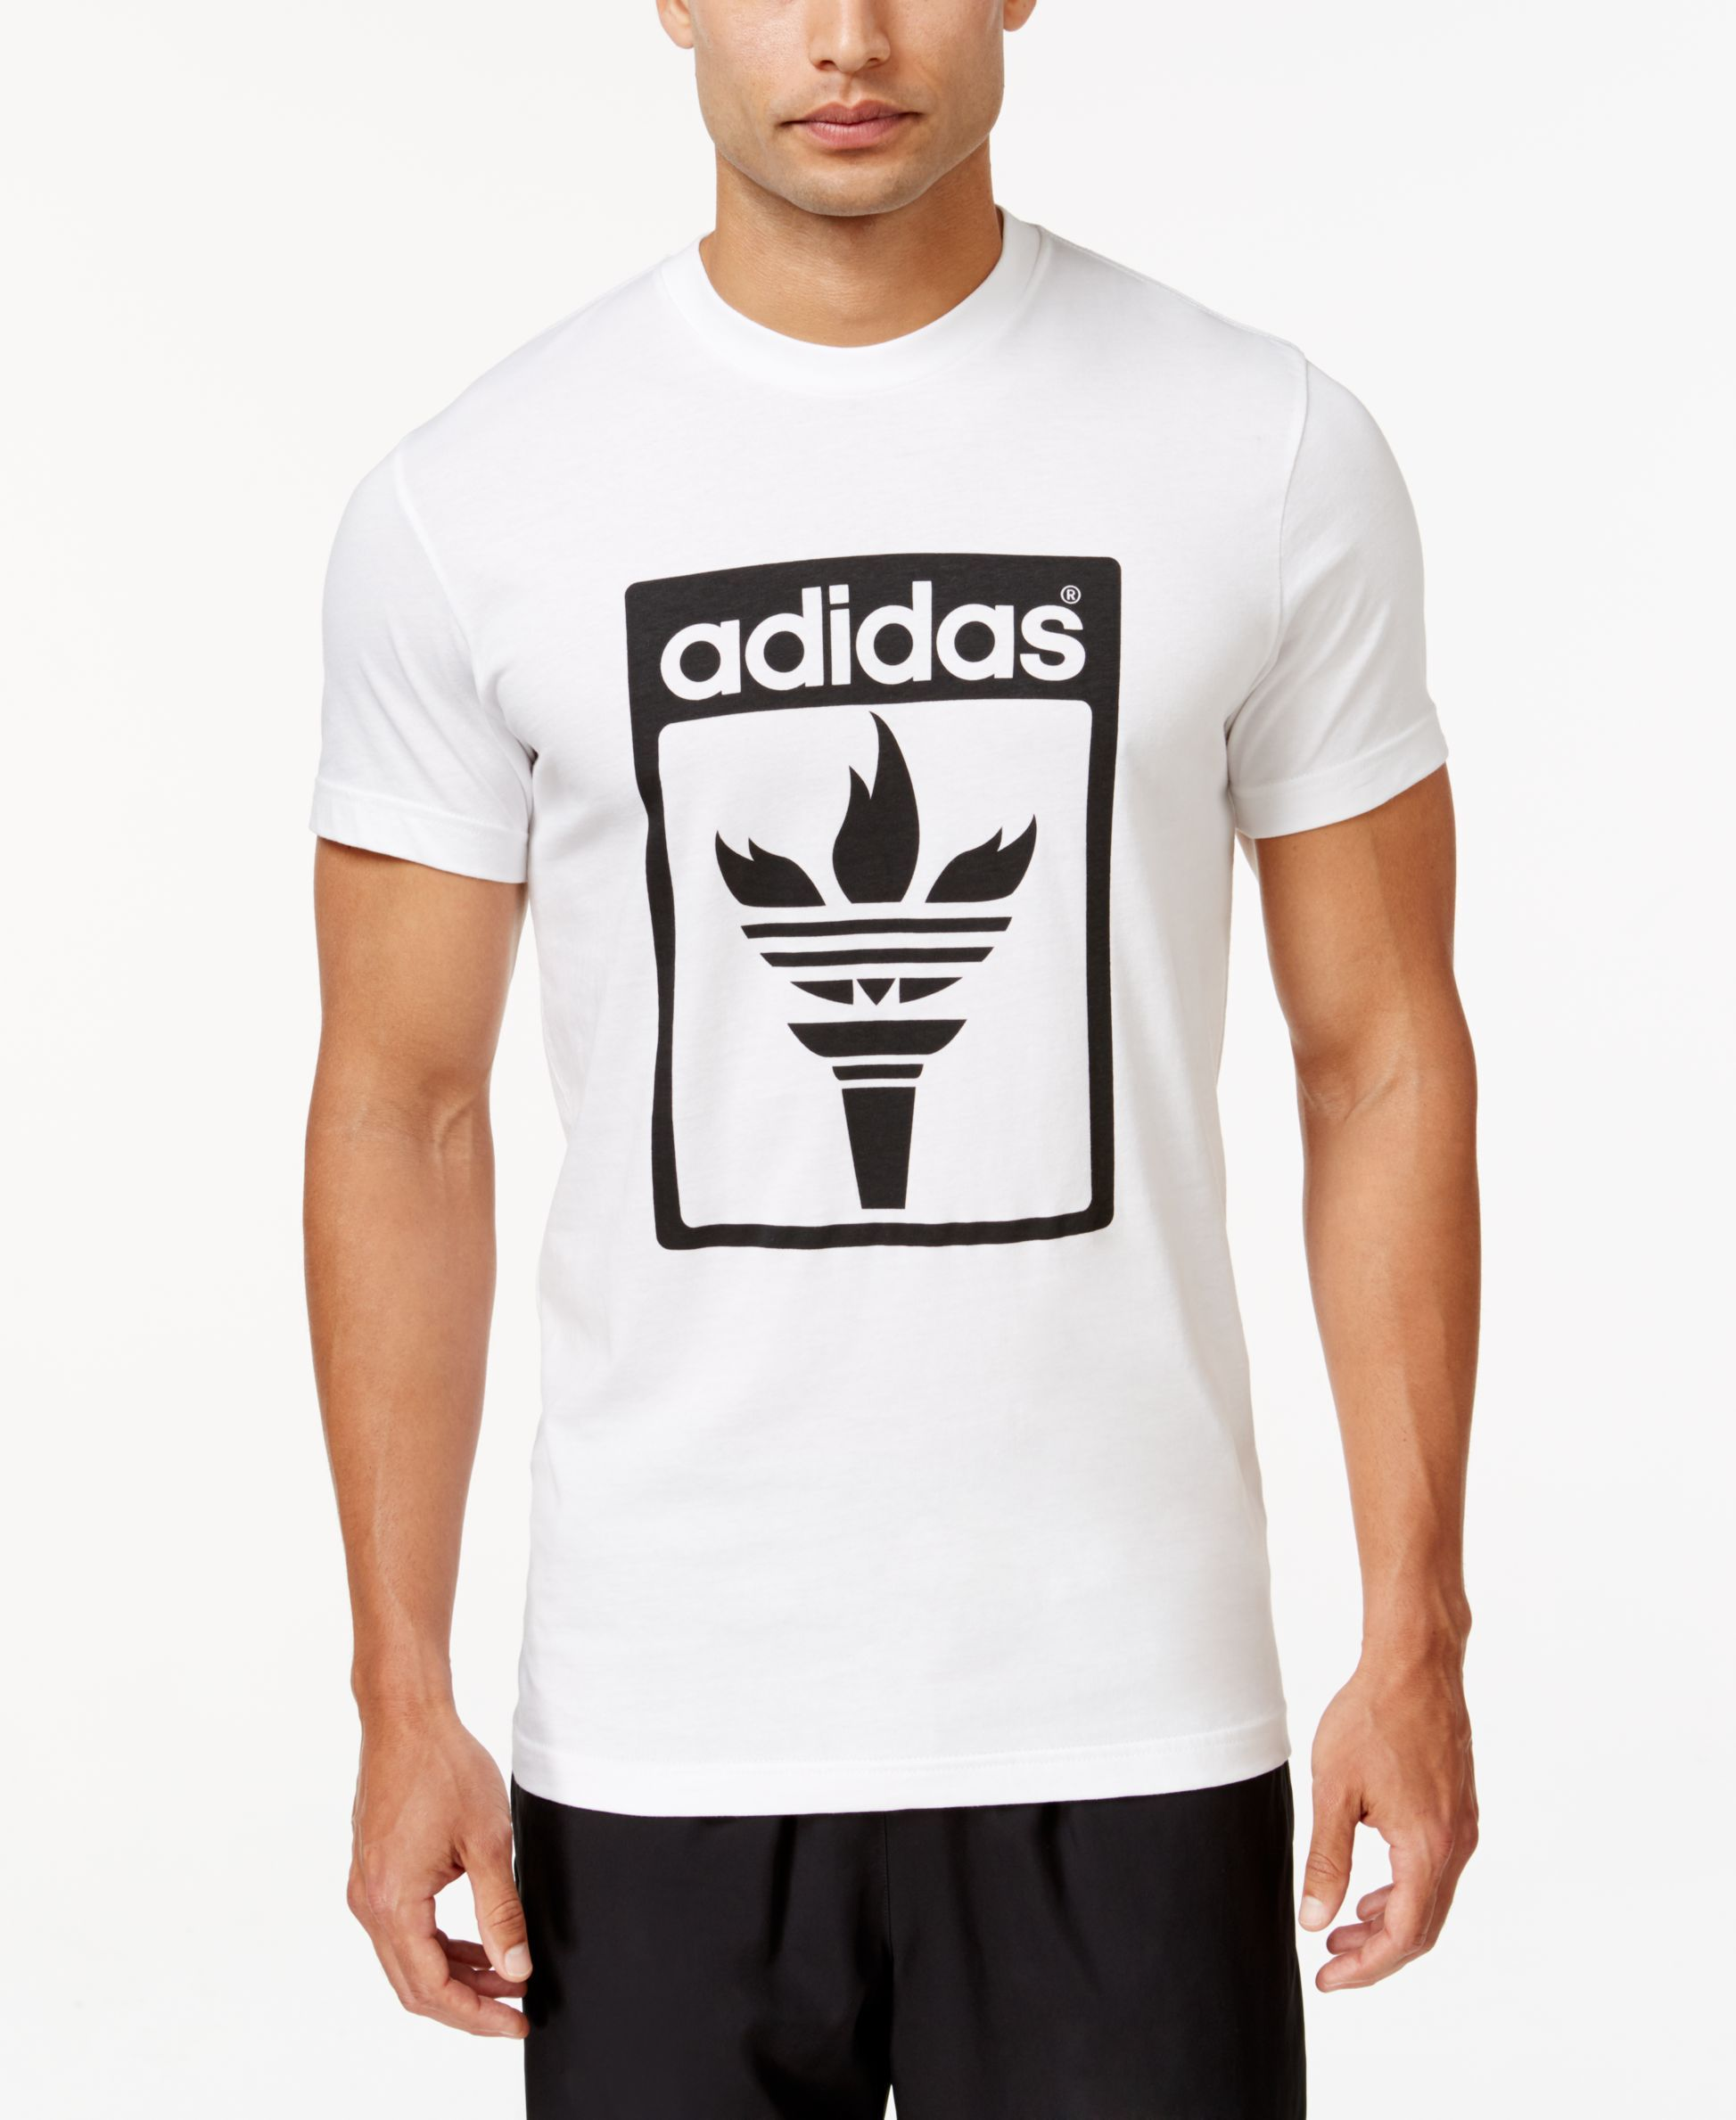 adidas Originals Men's Trefoil Fire Graphic T-Shirt - T-Shirts - Men -  Macy's